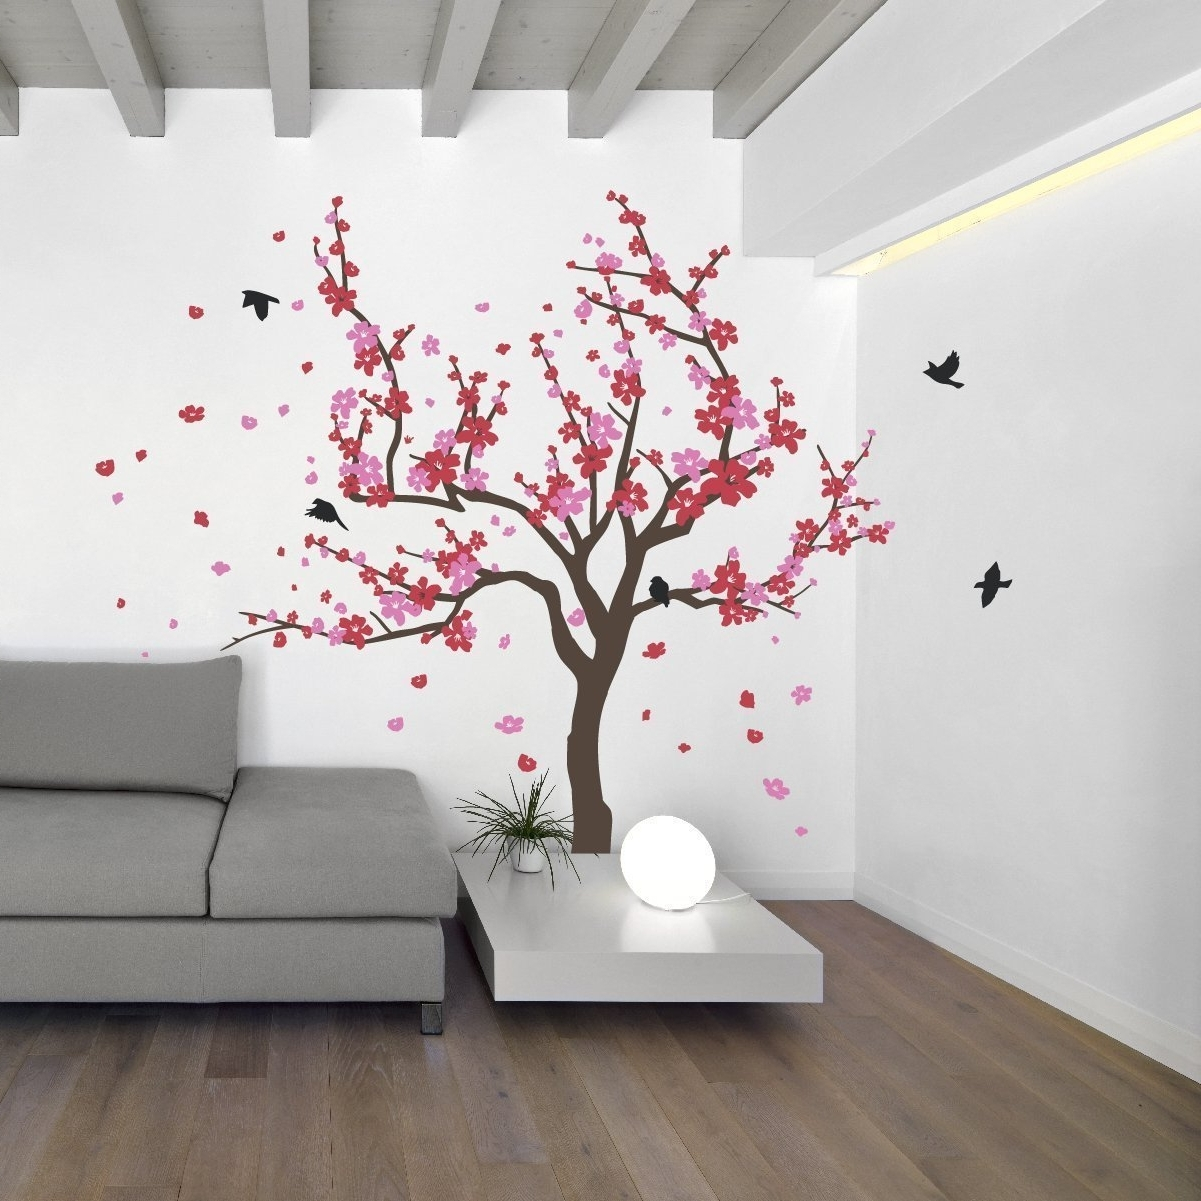 Famous Japanese Cherry Blossom Tree And Birds Wall Decal Sticker For With  Red Cherry Blossom Wall